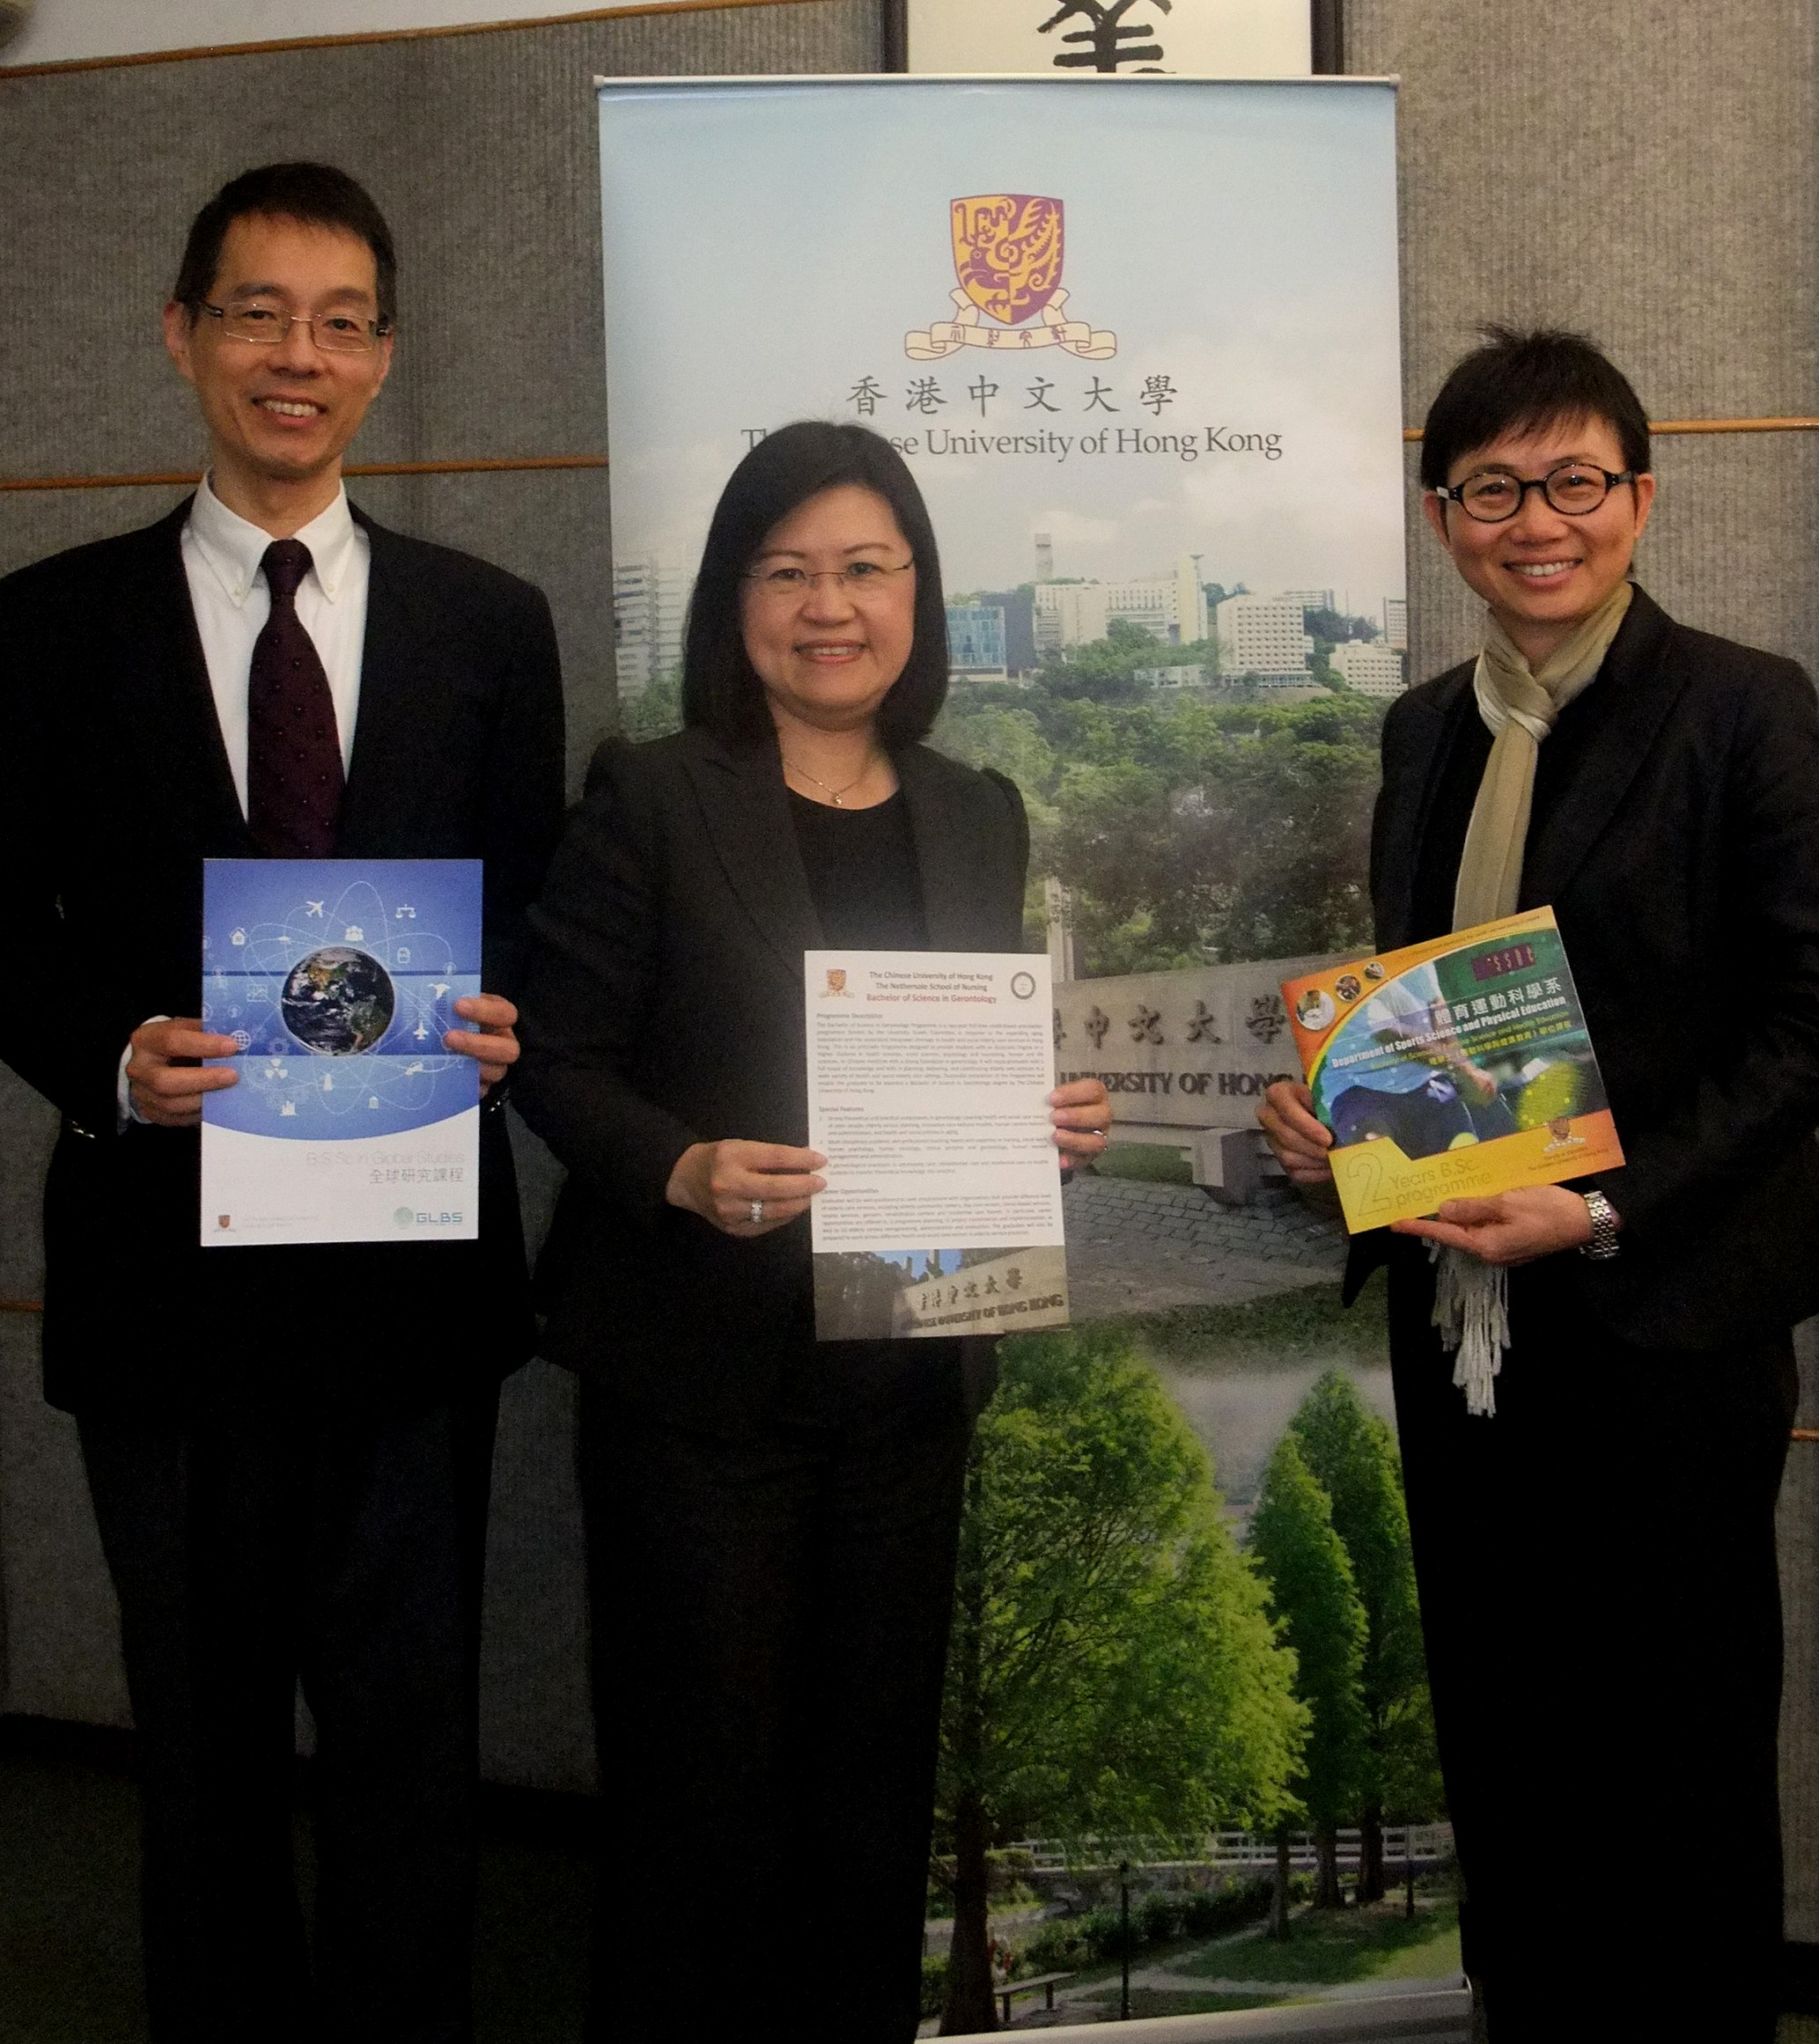 (From left) Prof. Sunny K.S. Kwong, Associate Dean (Education), Faculty of Social Science; Prof. Diana T.F. Lee , Director of The Nethersole School of Nursing, Faculty of Medicine; Prof. Amy S.C. Ha, Chairperson, Department of Sports Science and Physical Education, Faculty of Education, CUHK.